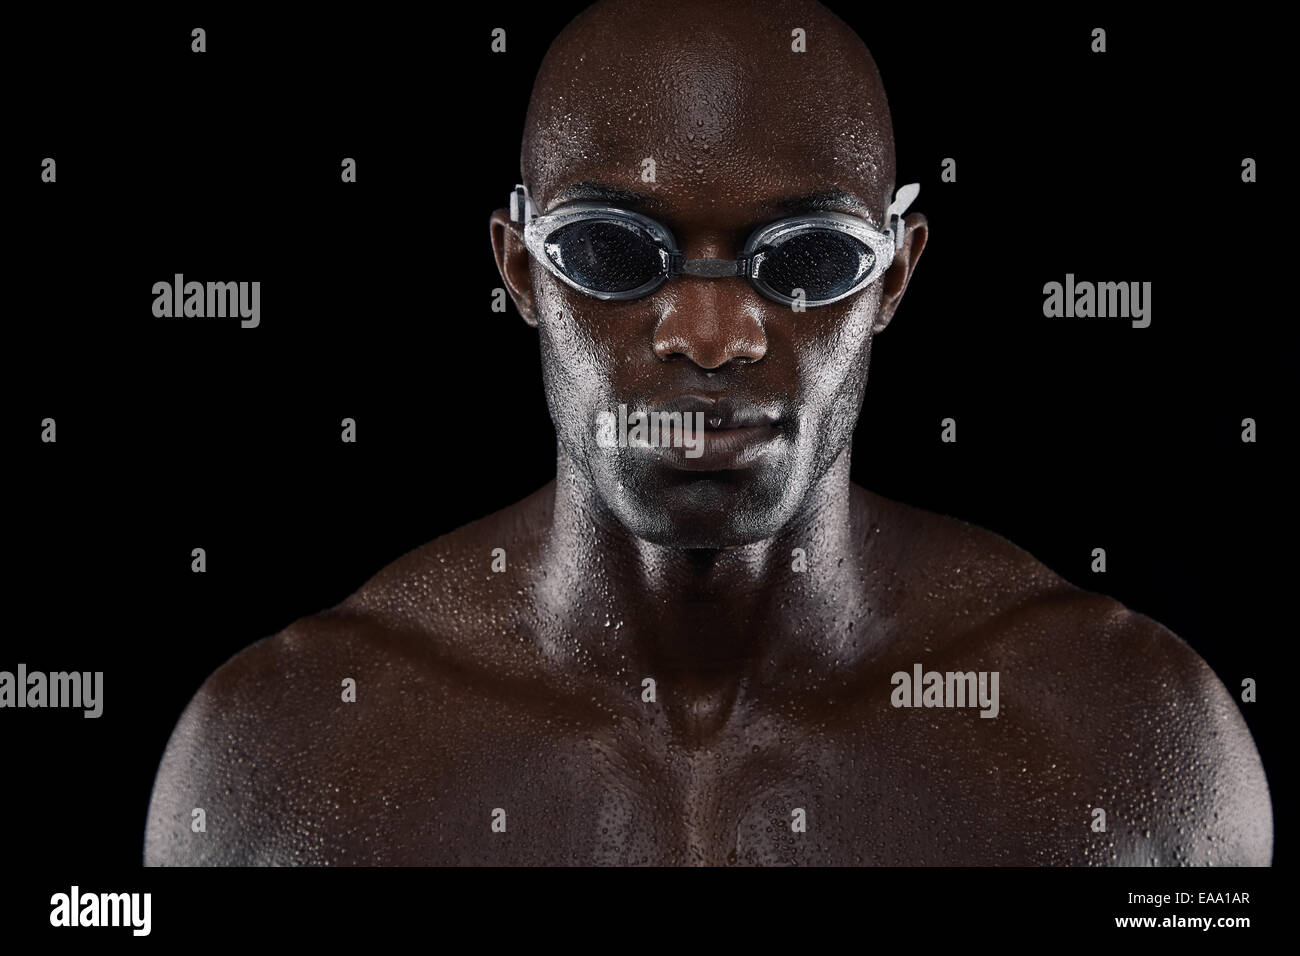 Portrait of smiling at camera nageur sur fond noir. Close-up image of muscular young man wearing swim Photo Stock